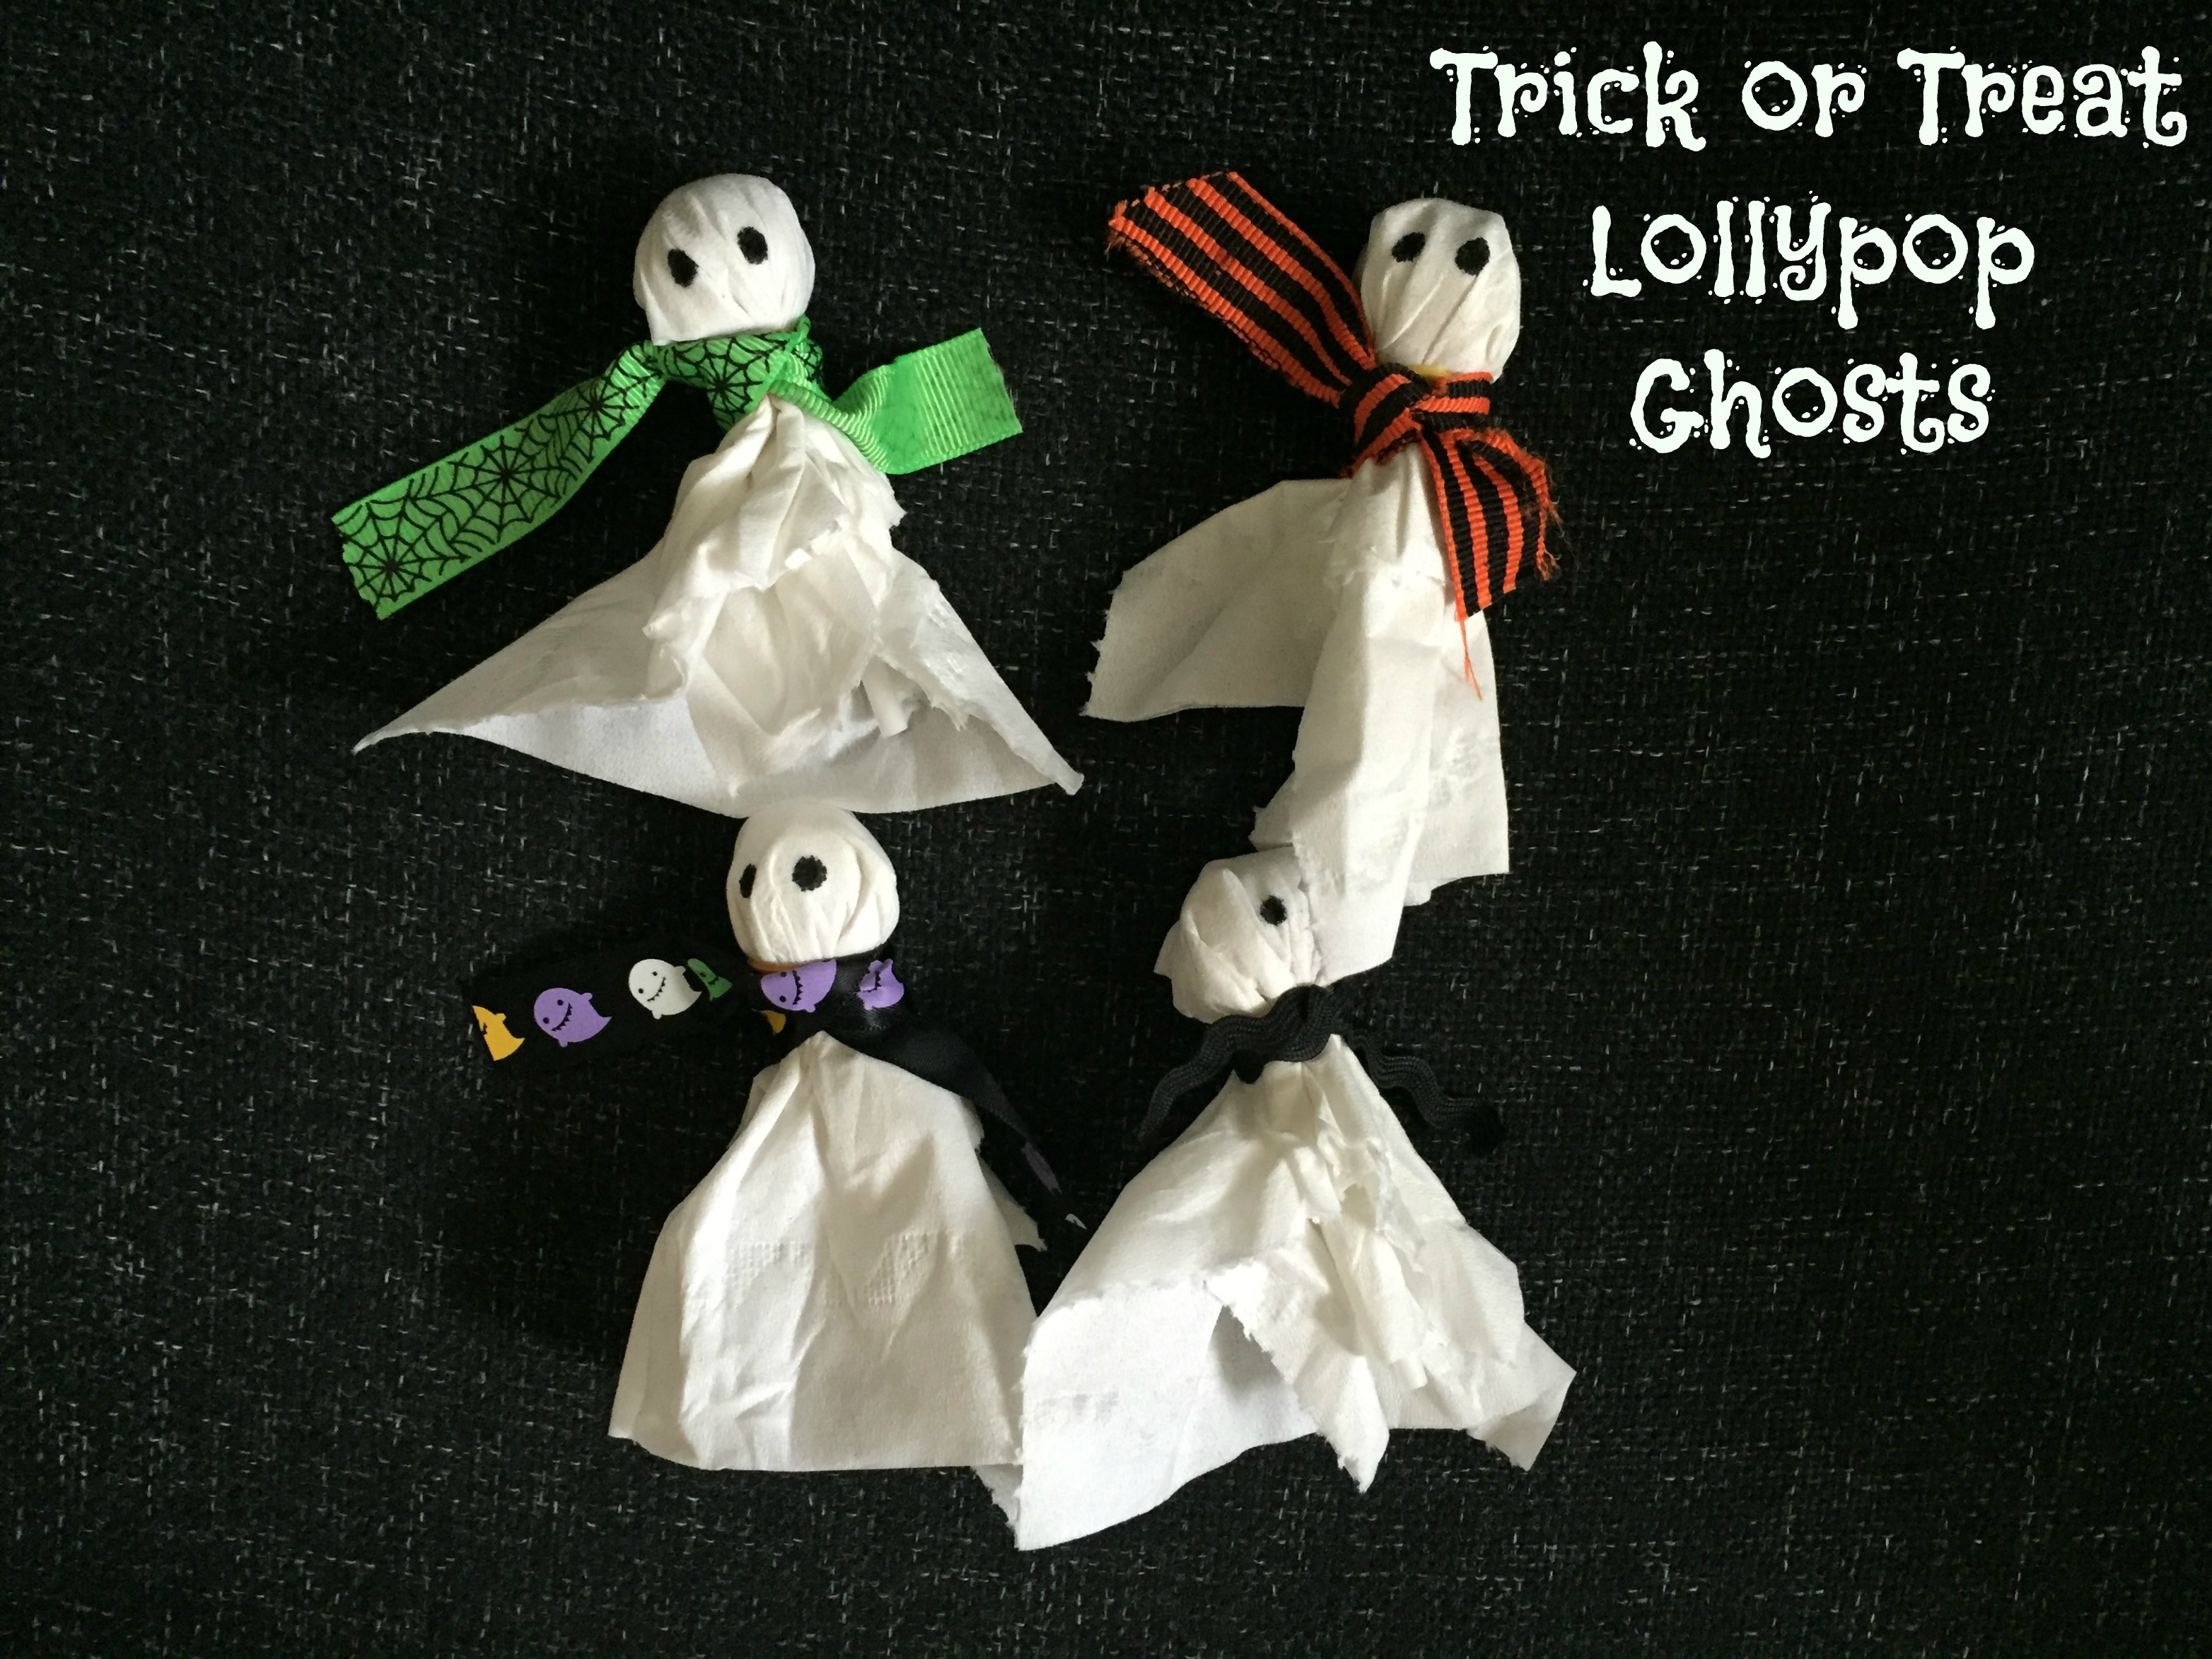 Trick or treat ghosts